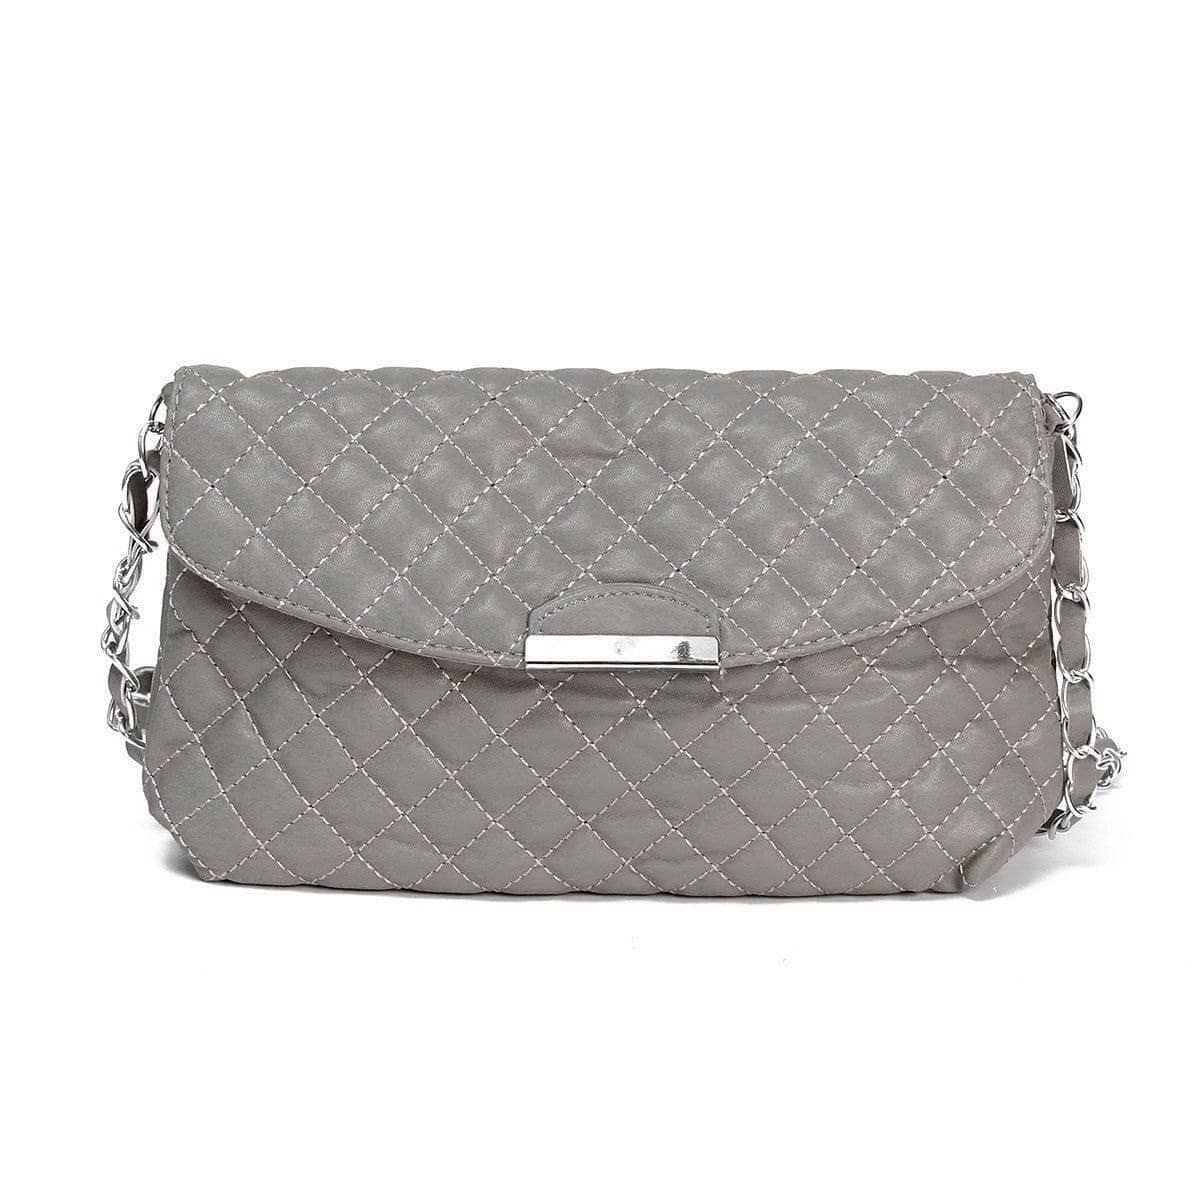 Aint Laurent Accessories Silver Purse With Shoulder Strap - Multiple Colors